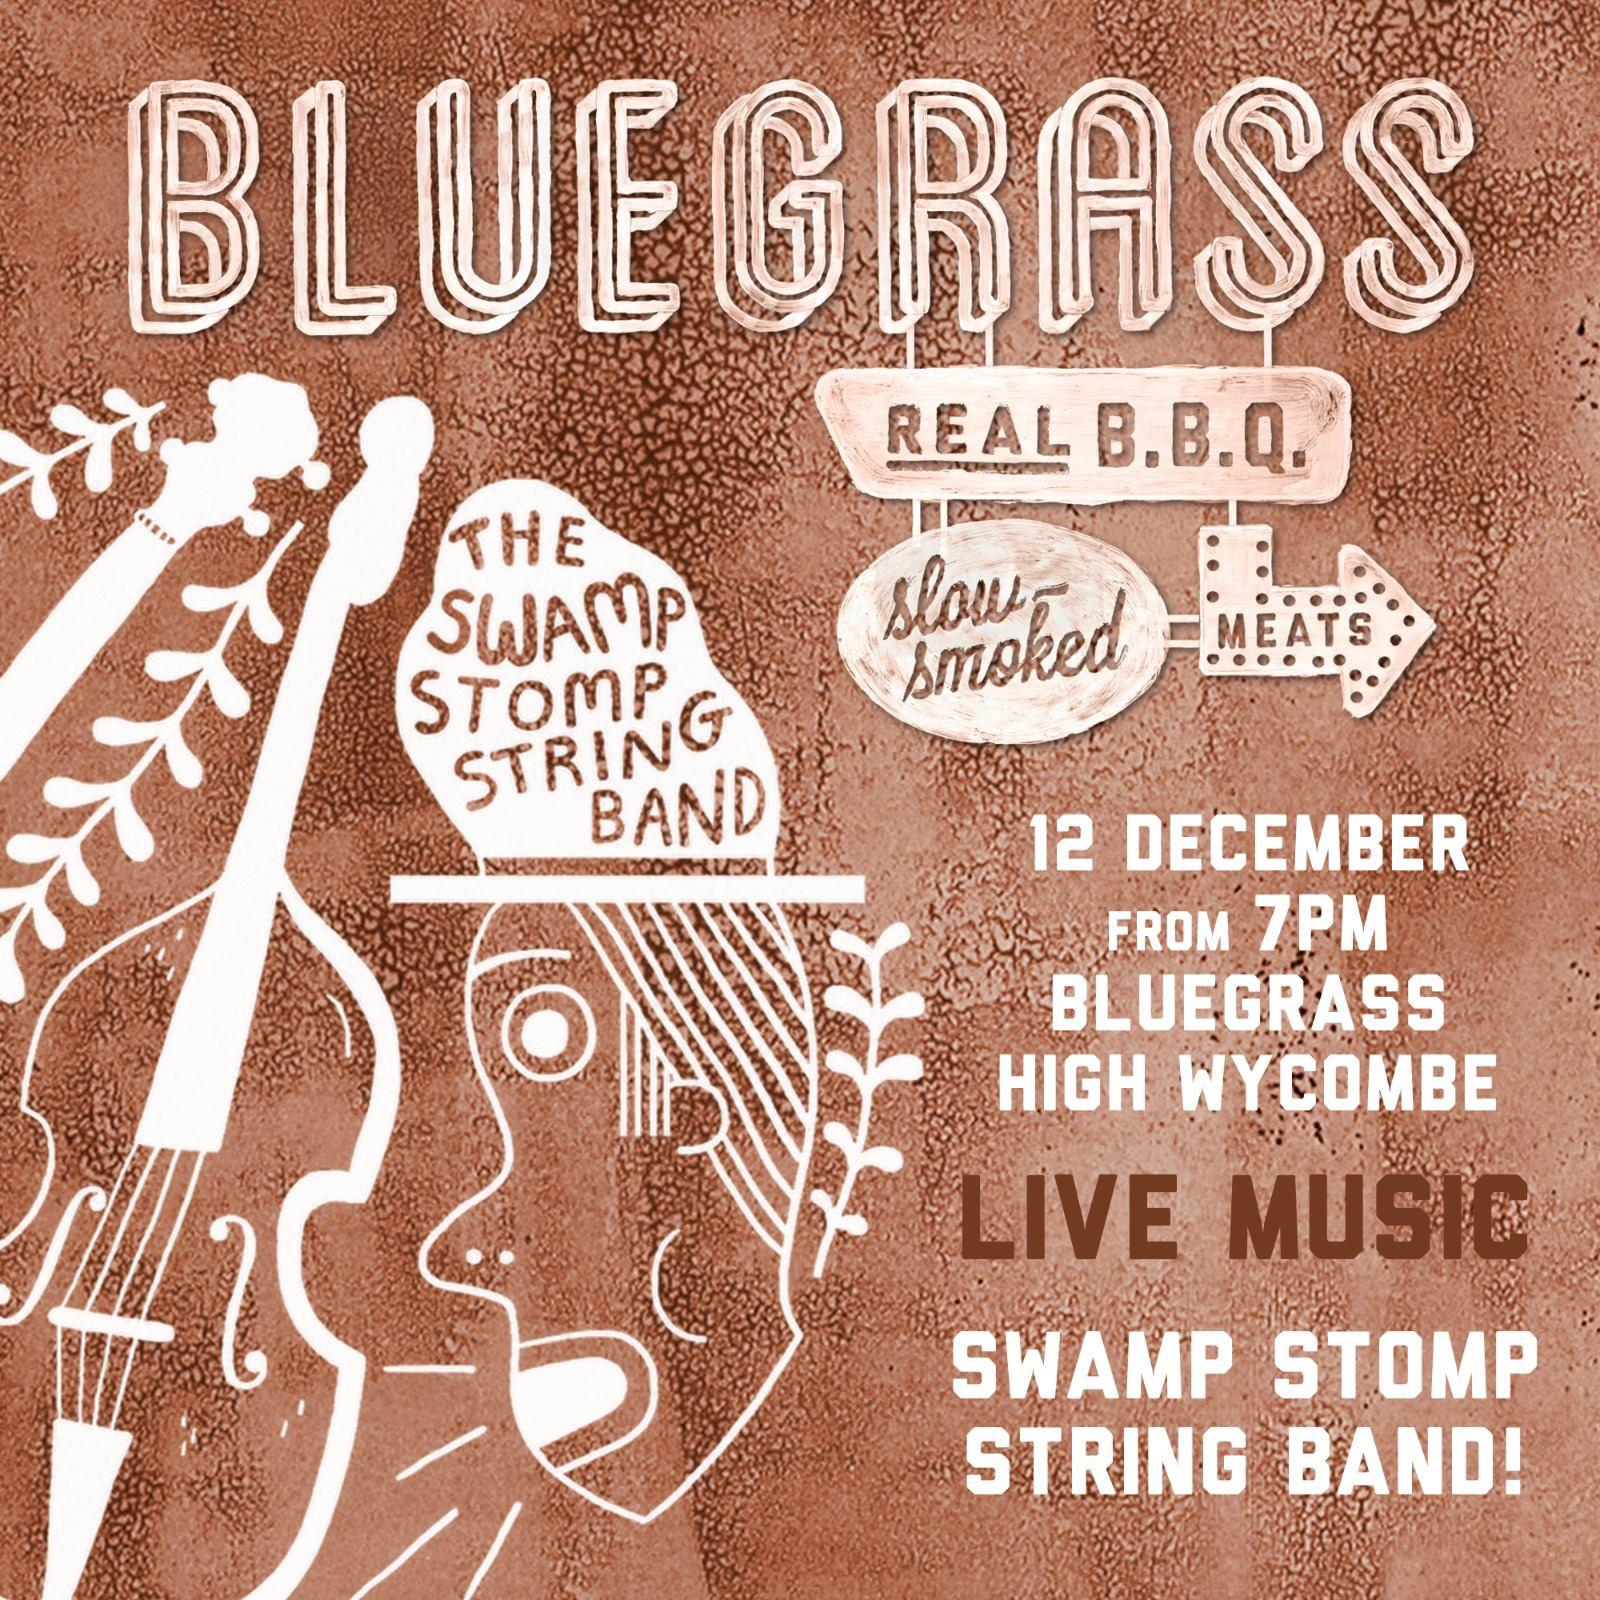 Live Music with Swamp Stomp Band at Bluegrass BBQ High Wycombe on 12th December